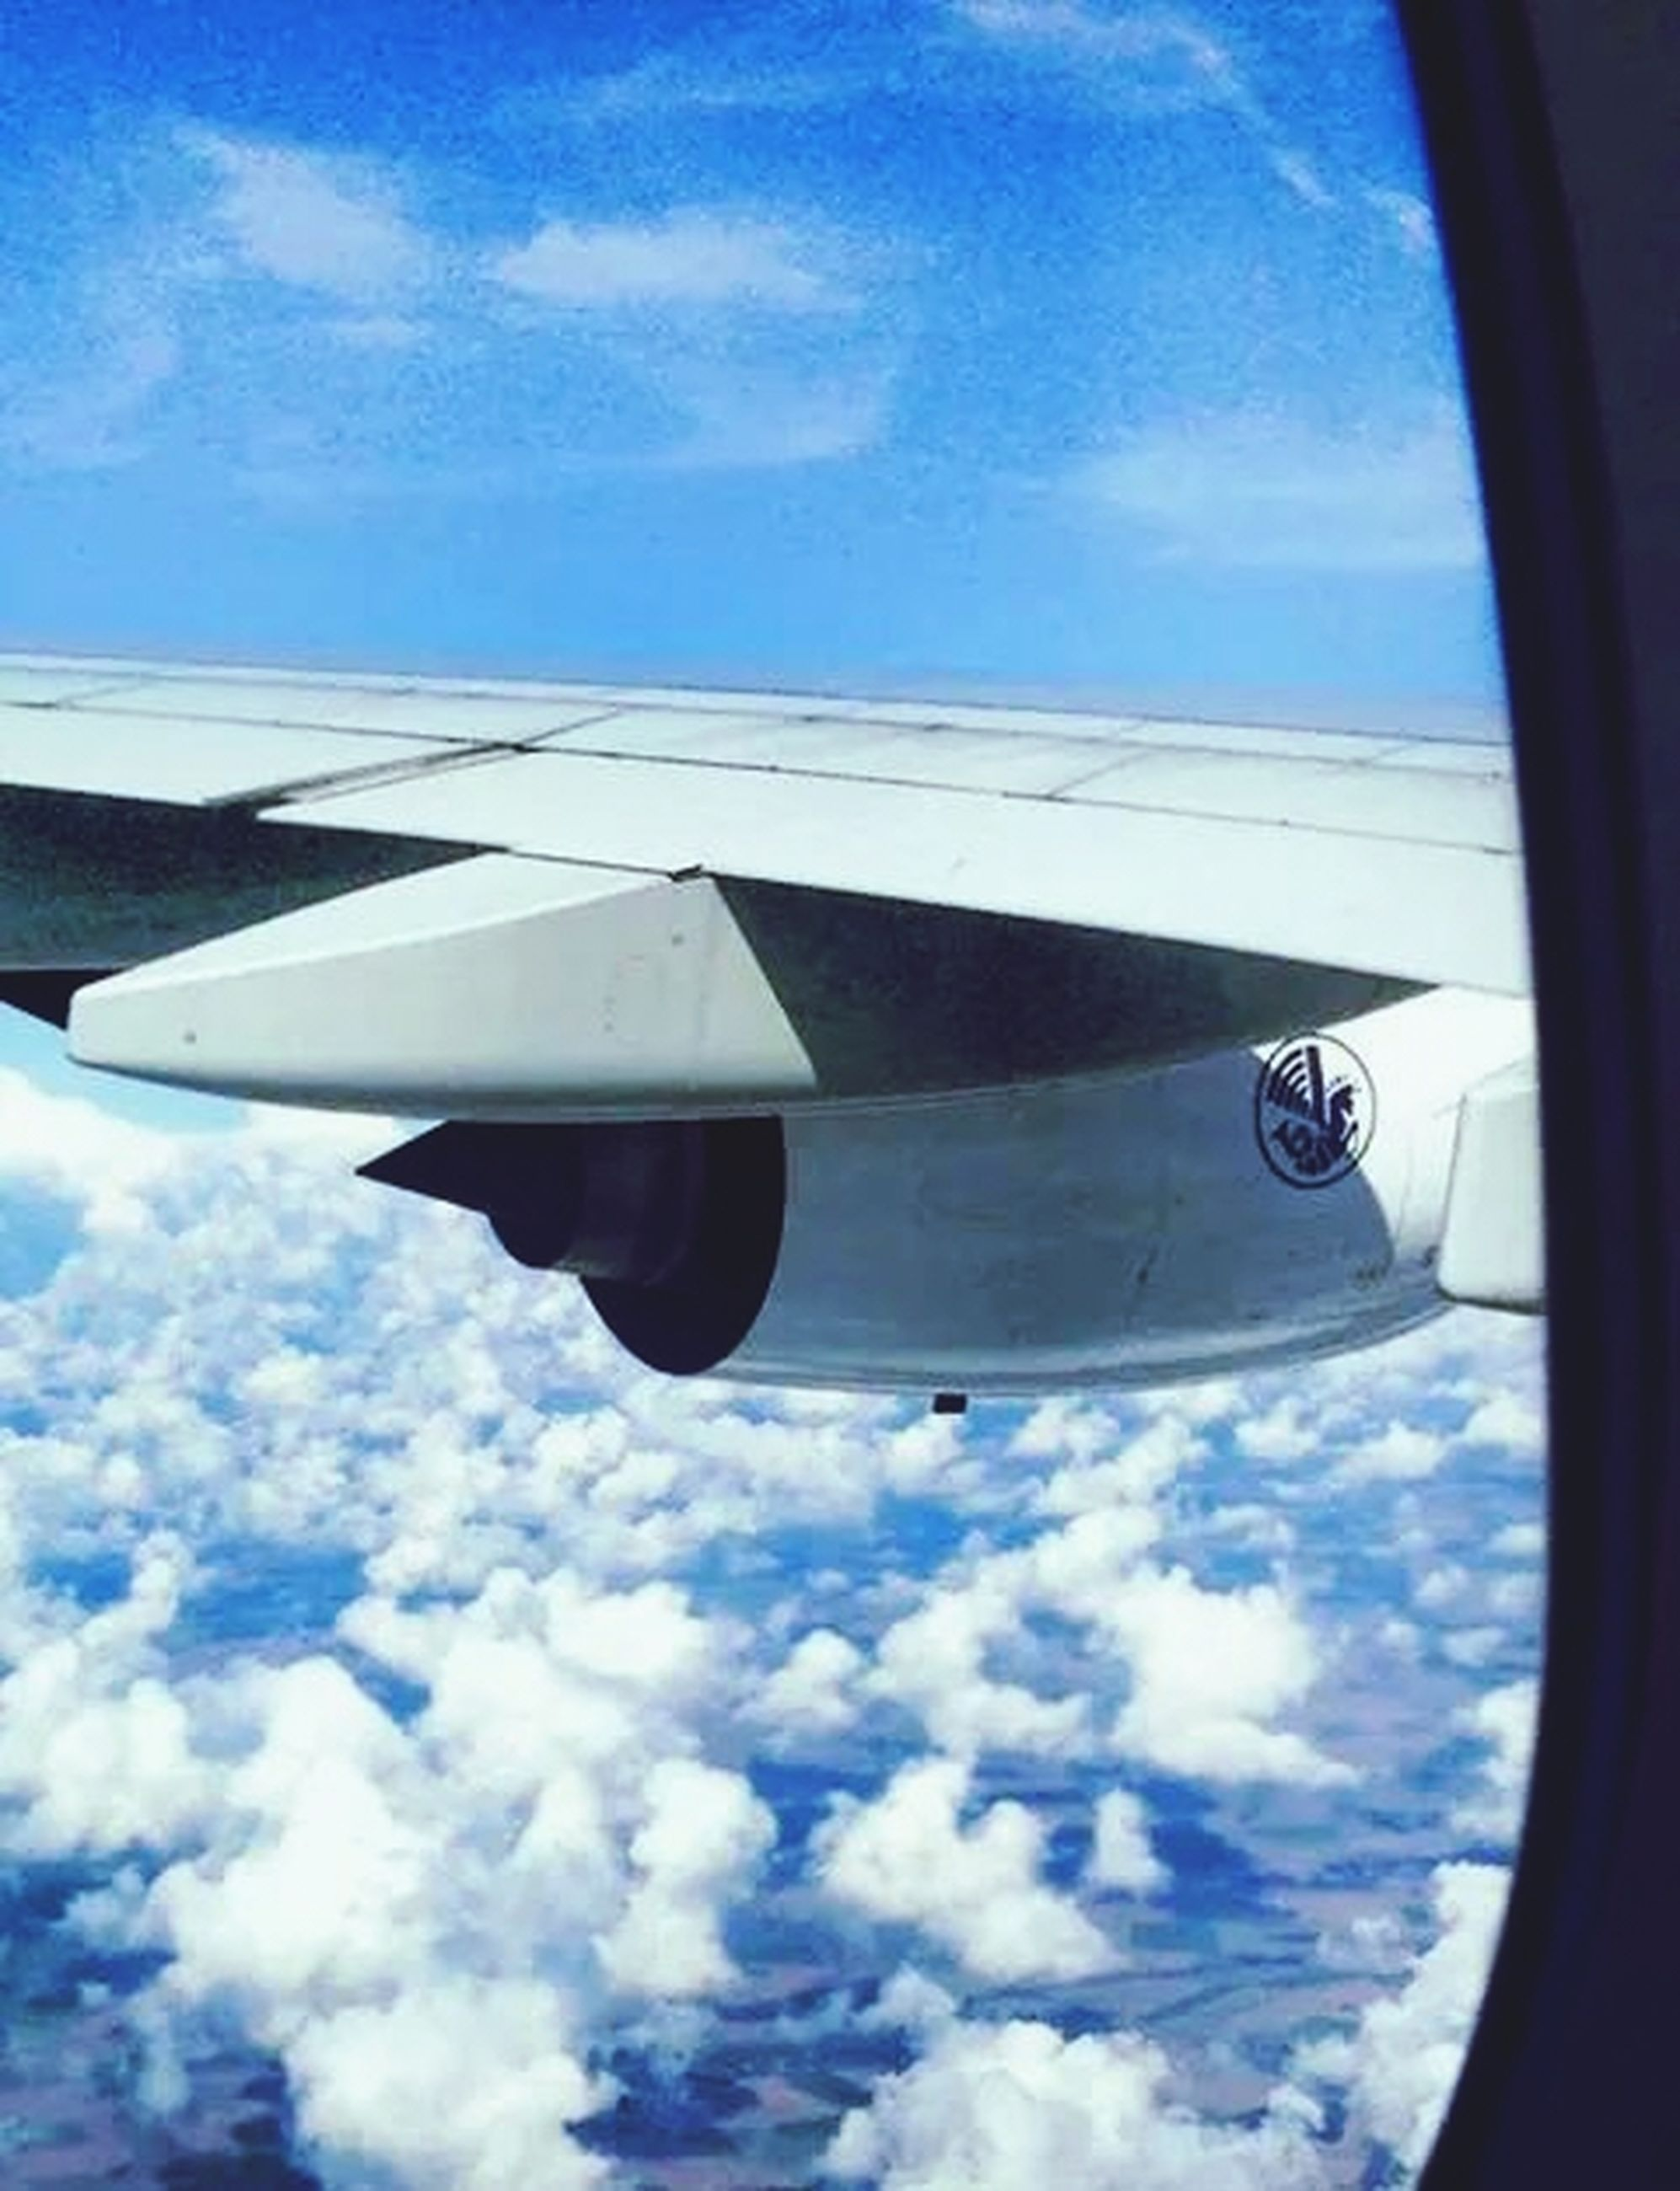 transportation, mode of transport, airplane, air vehicle, sky, cloud - sky, part of, travel, flying, vehicle interior, aircraft wing, public transportation, cropped, journey, window, vehicle part, glass - material, cloud, blue, mid-air